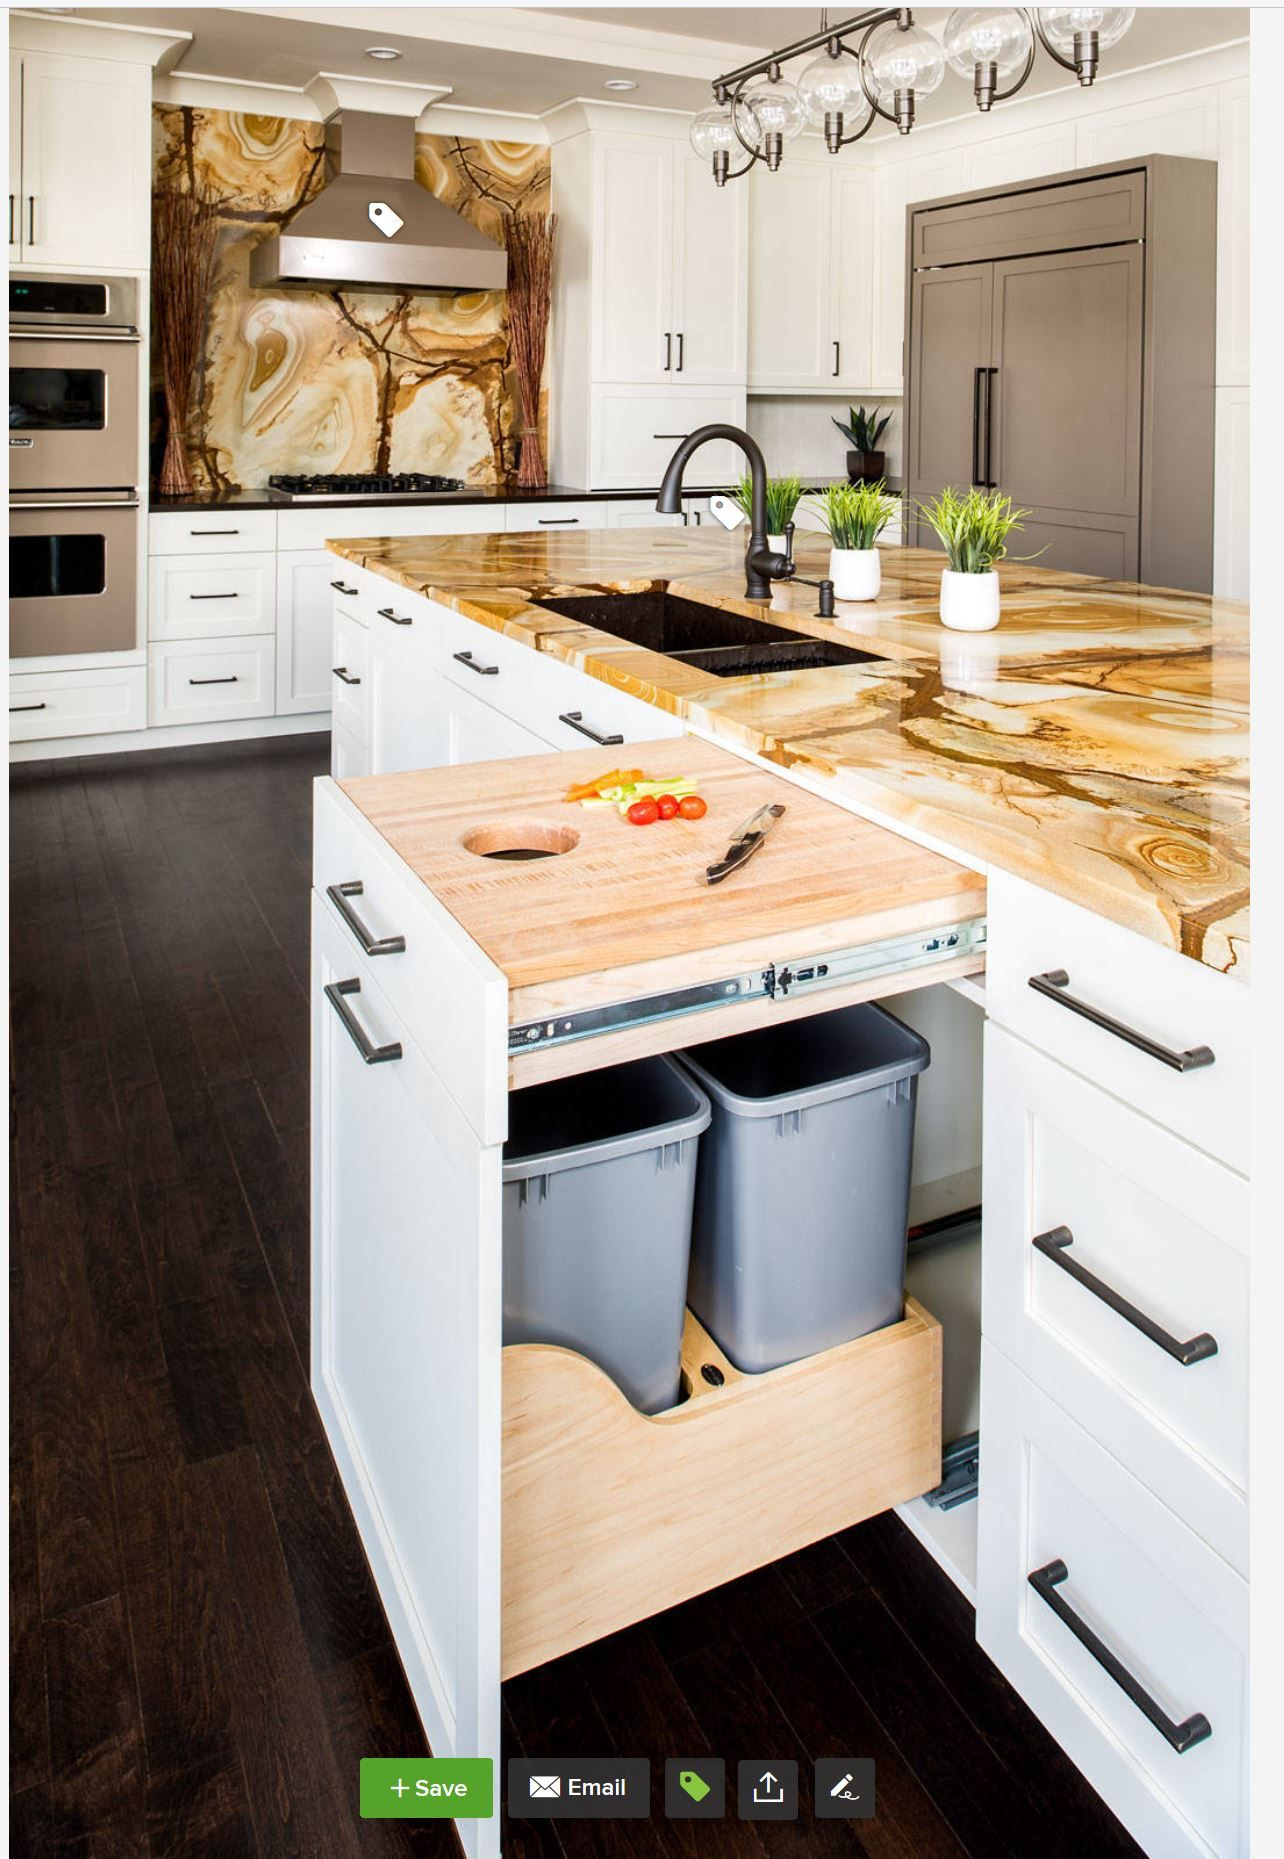 Kitchen in Sterling Road, Armonk - Transitional - Kitchen - New York - by Amazing Spaces | Houzz